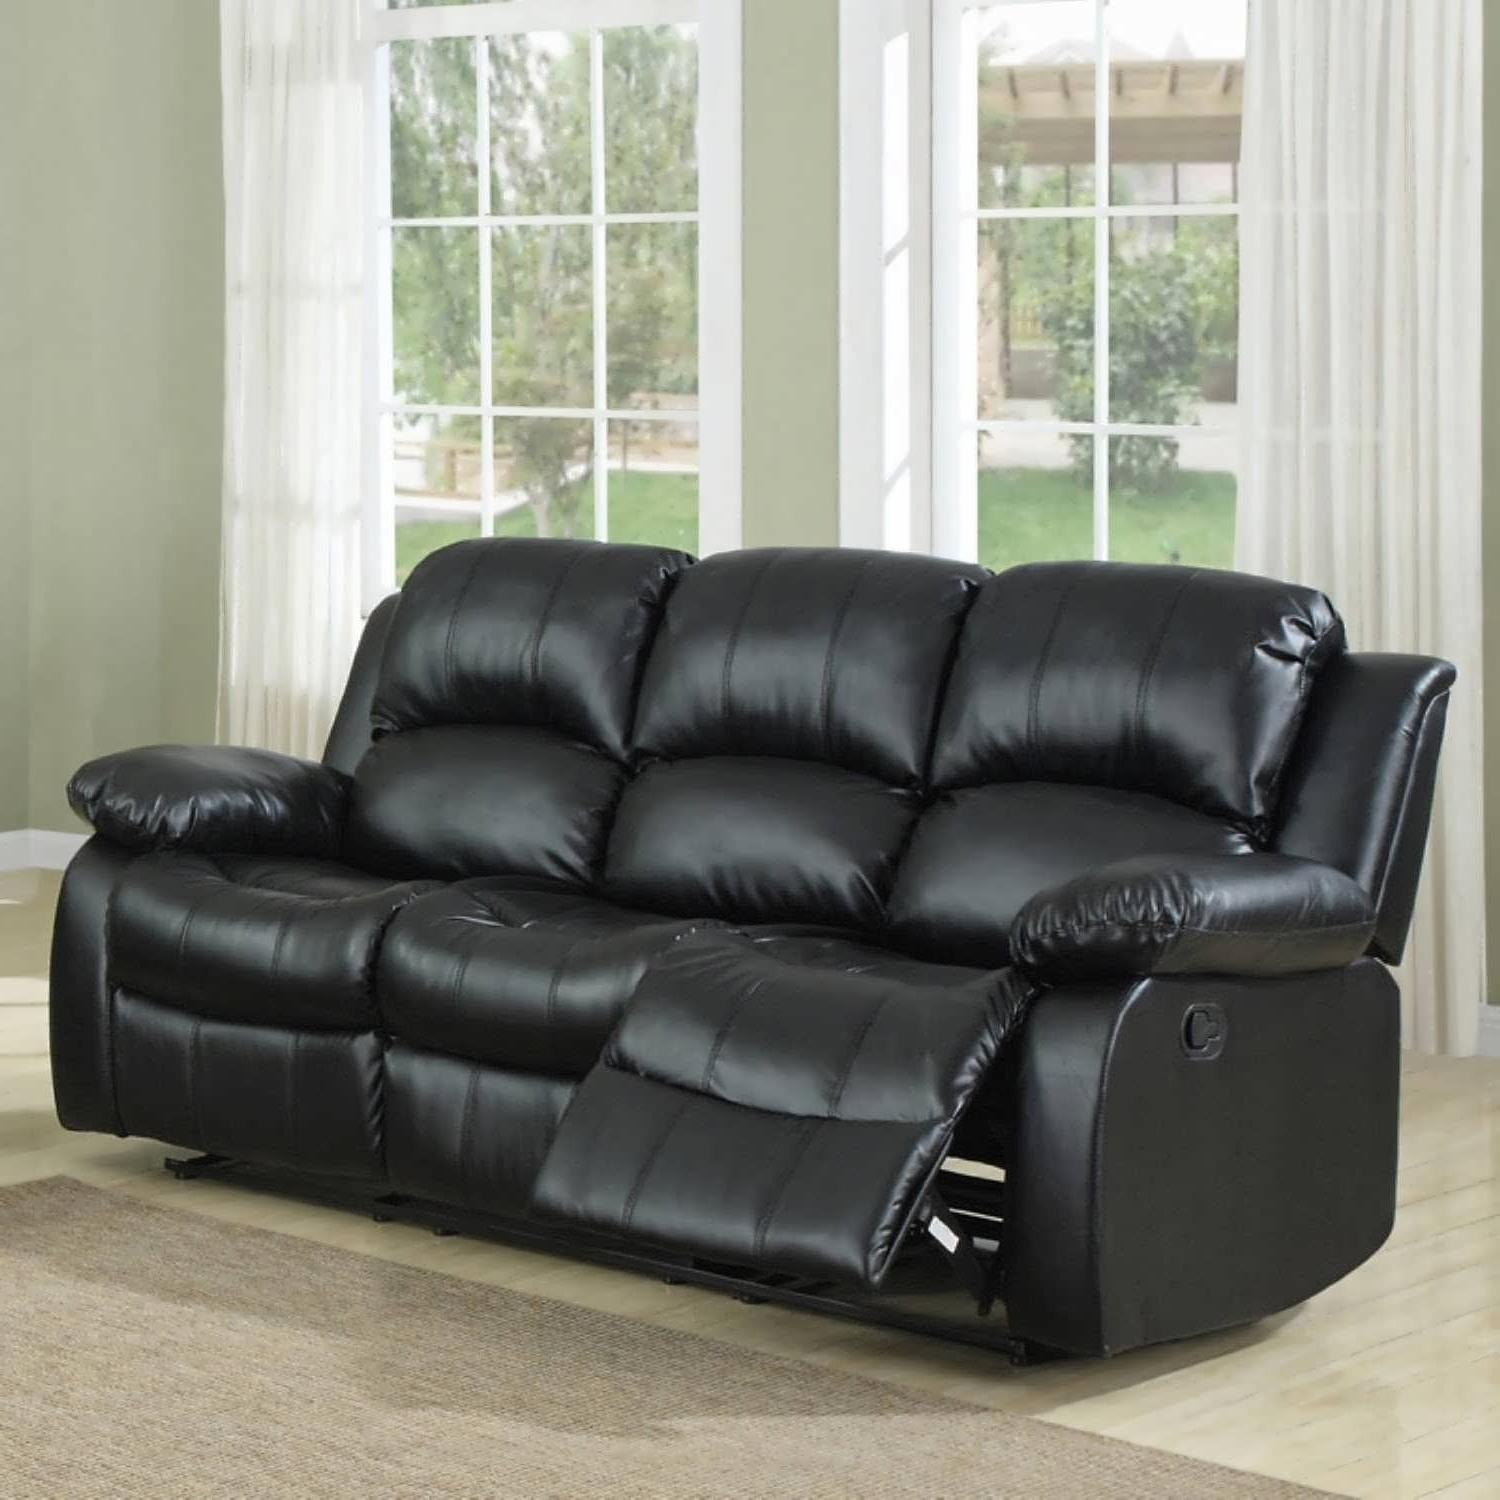 Sectional Sofas With Recliners For Small Spaces Pertaining To Most Current Sofas : Small Sectional Brown Leather Sectional Grey Sectional (View 15 of 20)